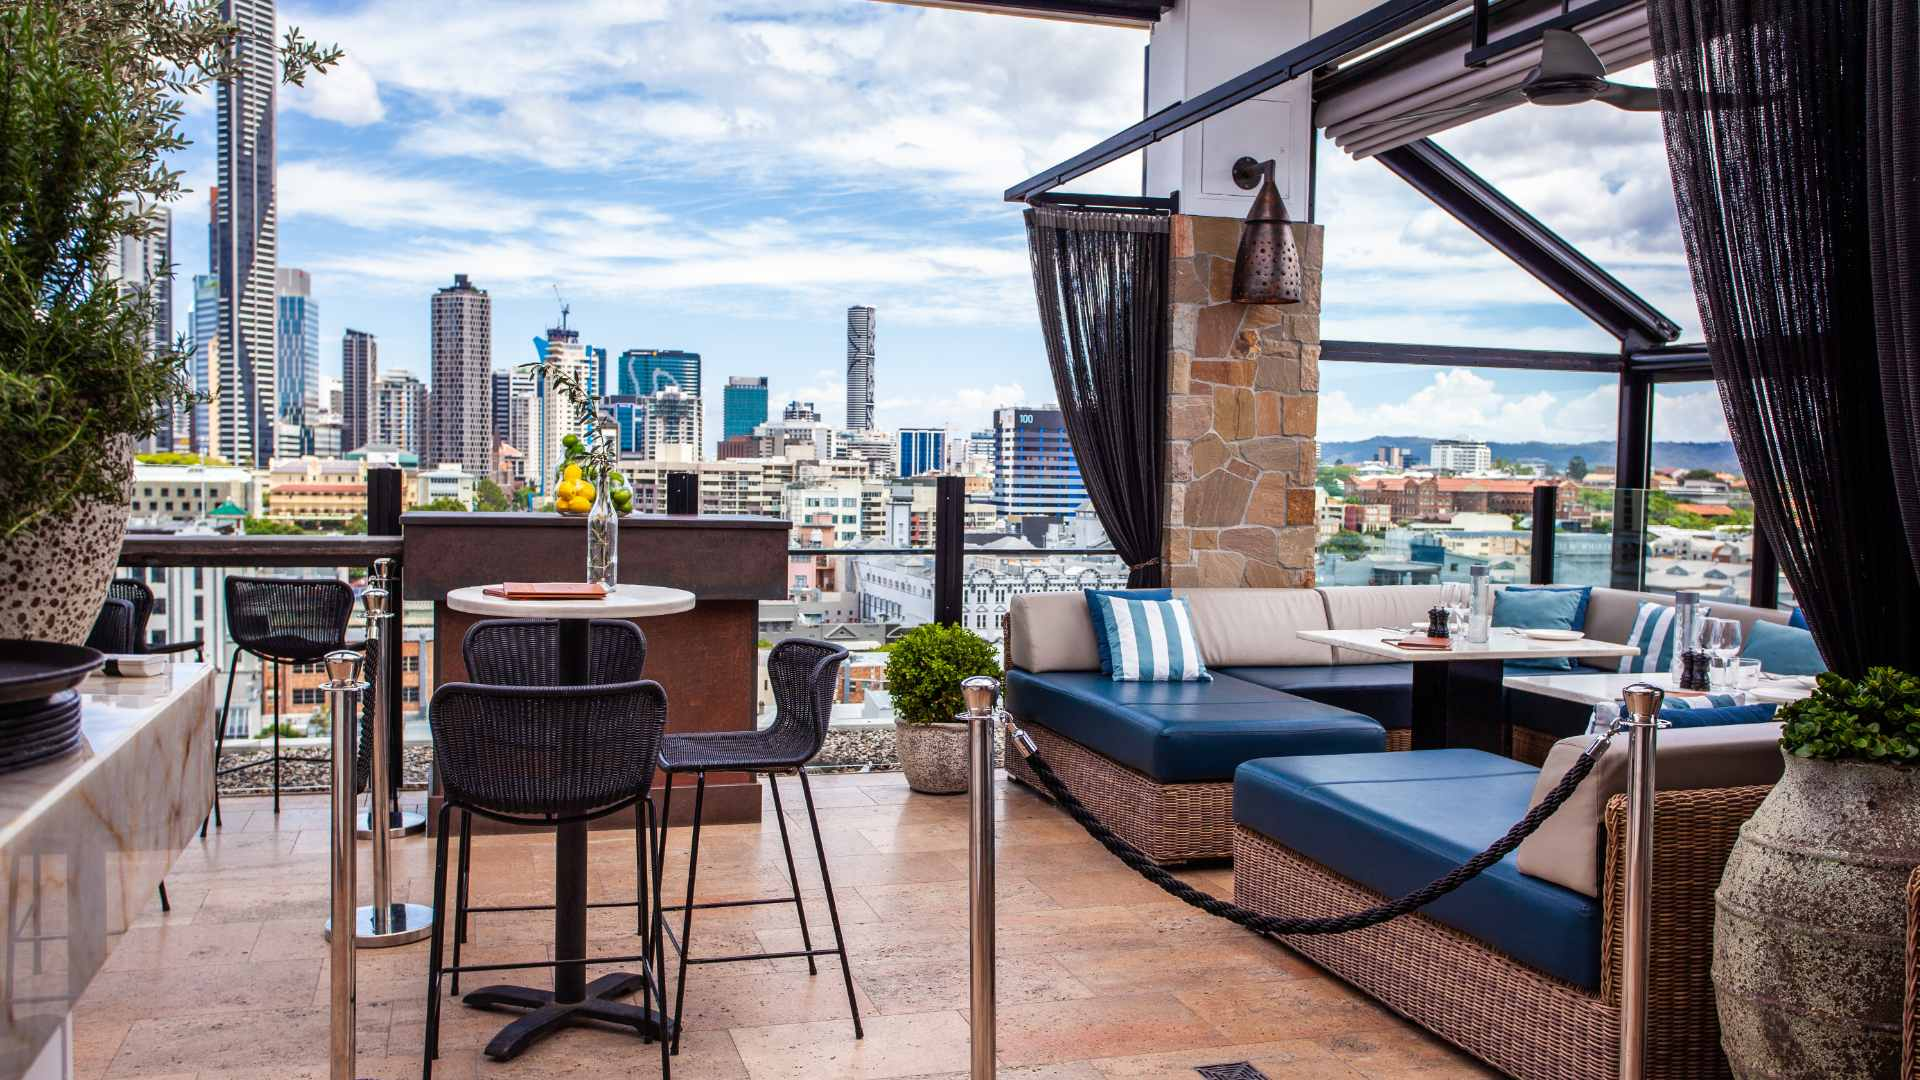 Maya Mexican Is Fortitude Valley's Soon-to-Open Rooftop Pop-Up Bar